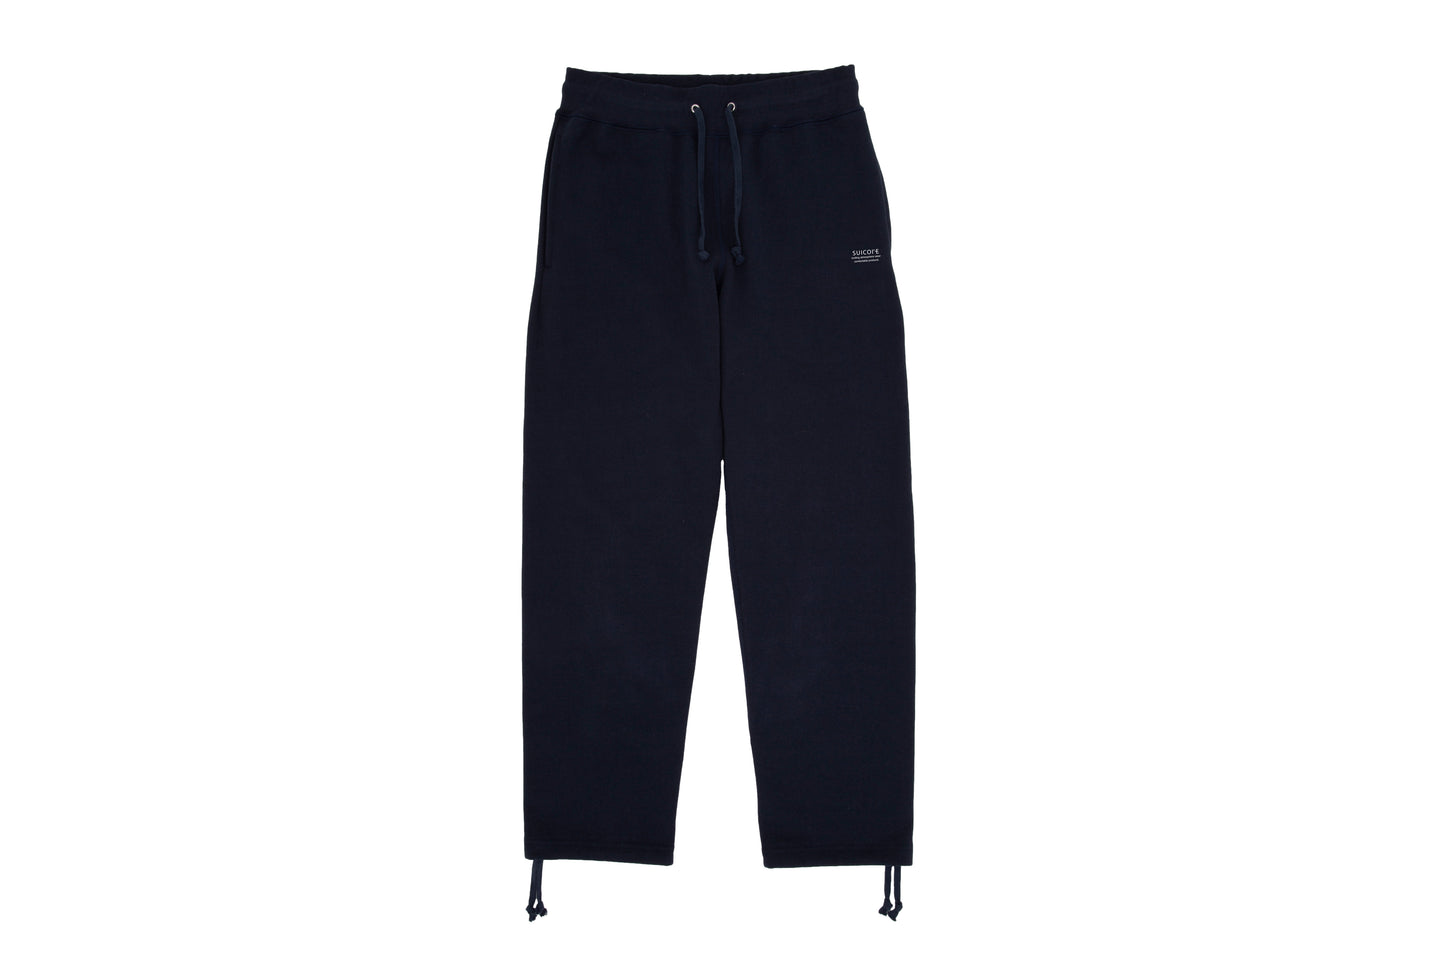 SUICOKE-CLOTHING-SWEATPANTS F - Navy-O2 Official Webstore Spring2021